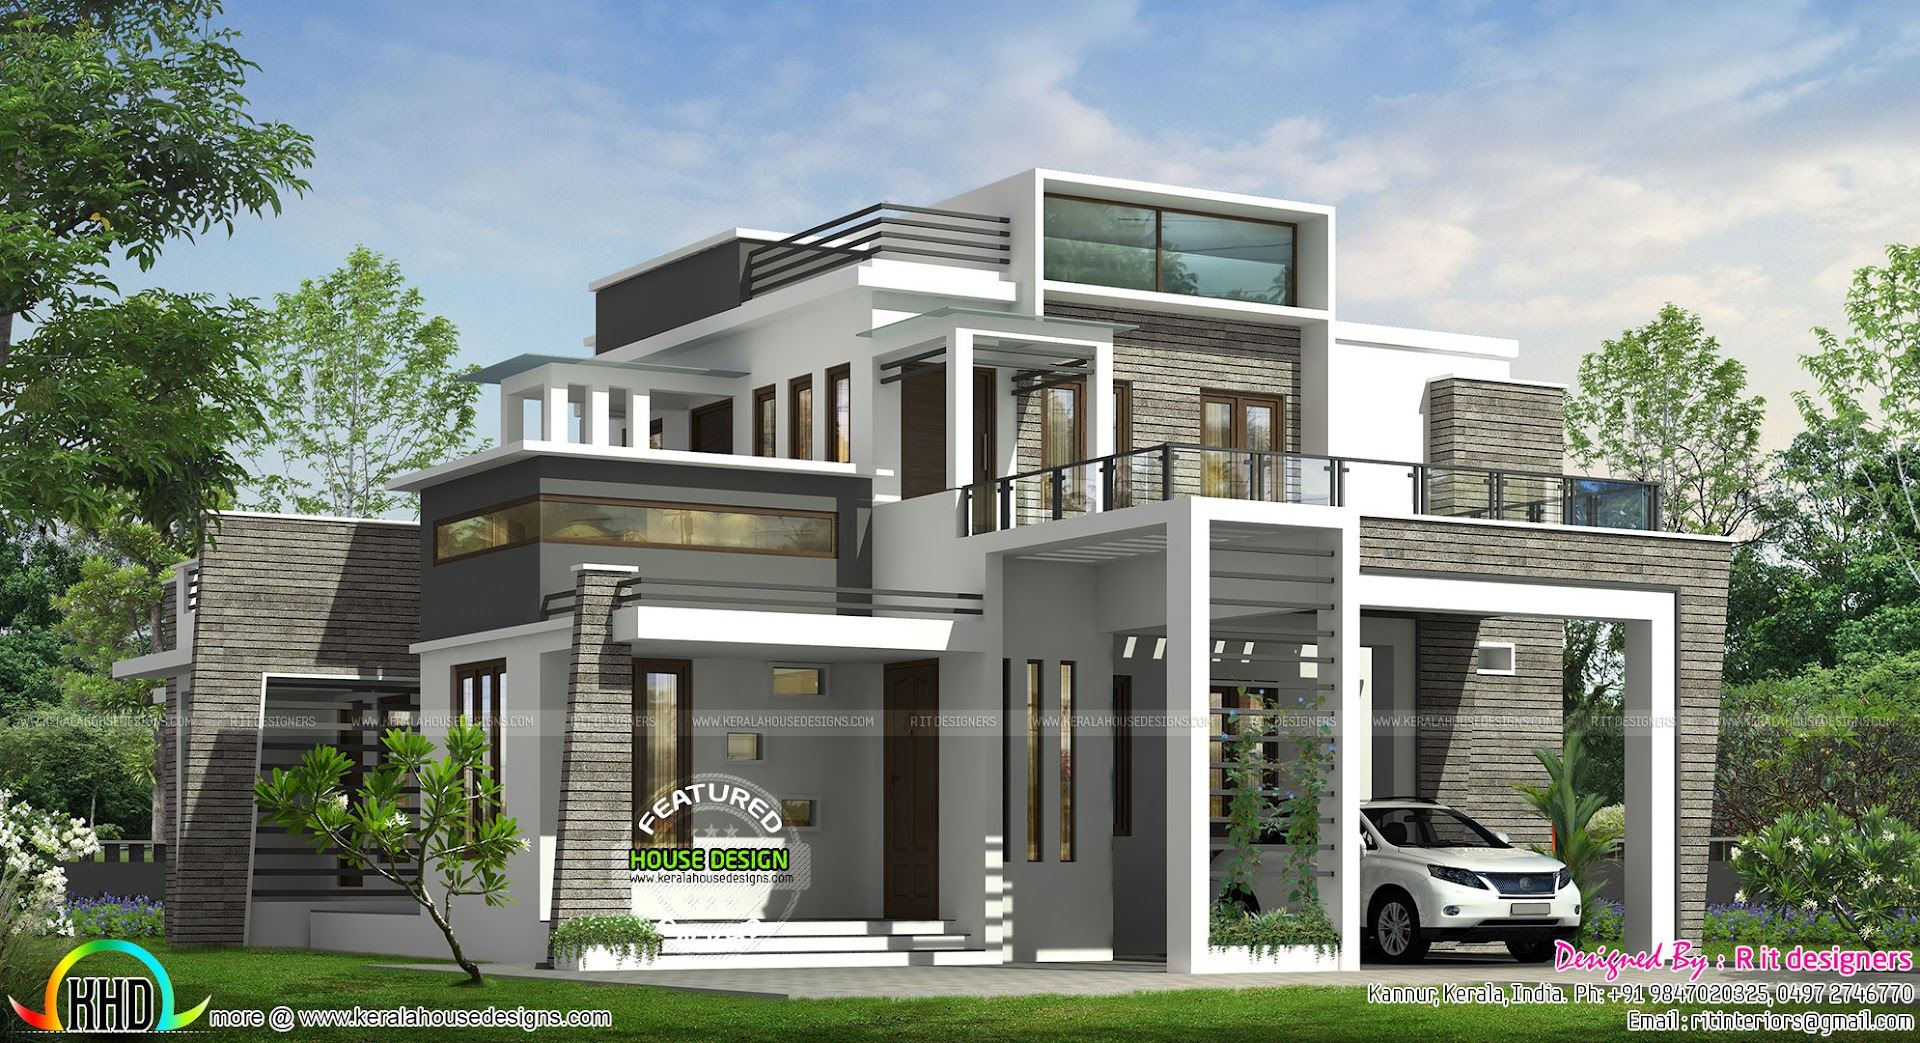 4 bhk modern box type house kerala home design and floor Types of modern houses